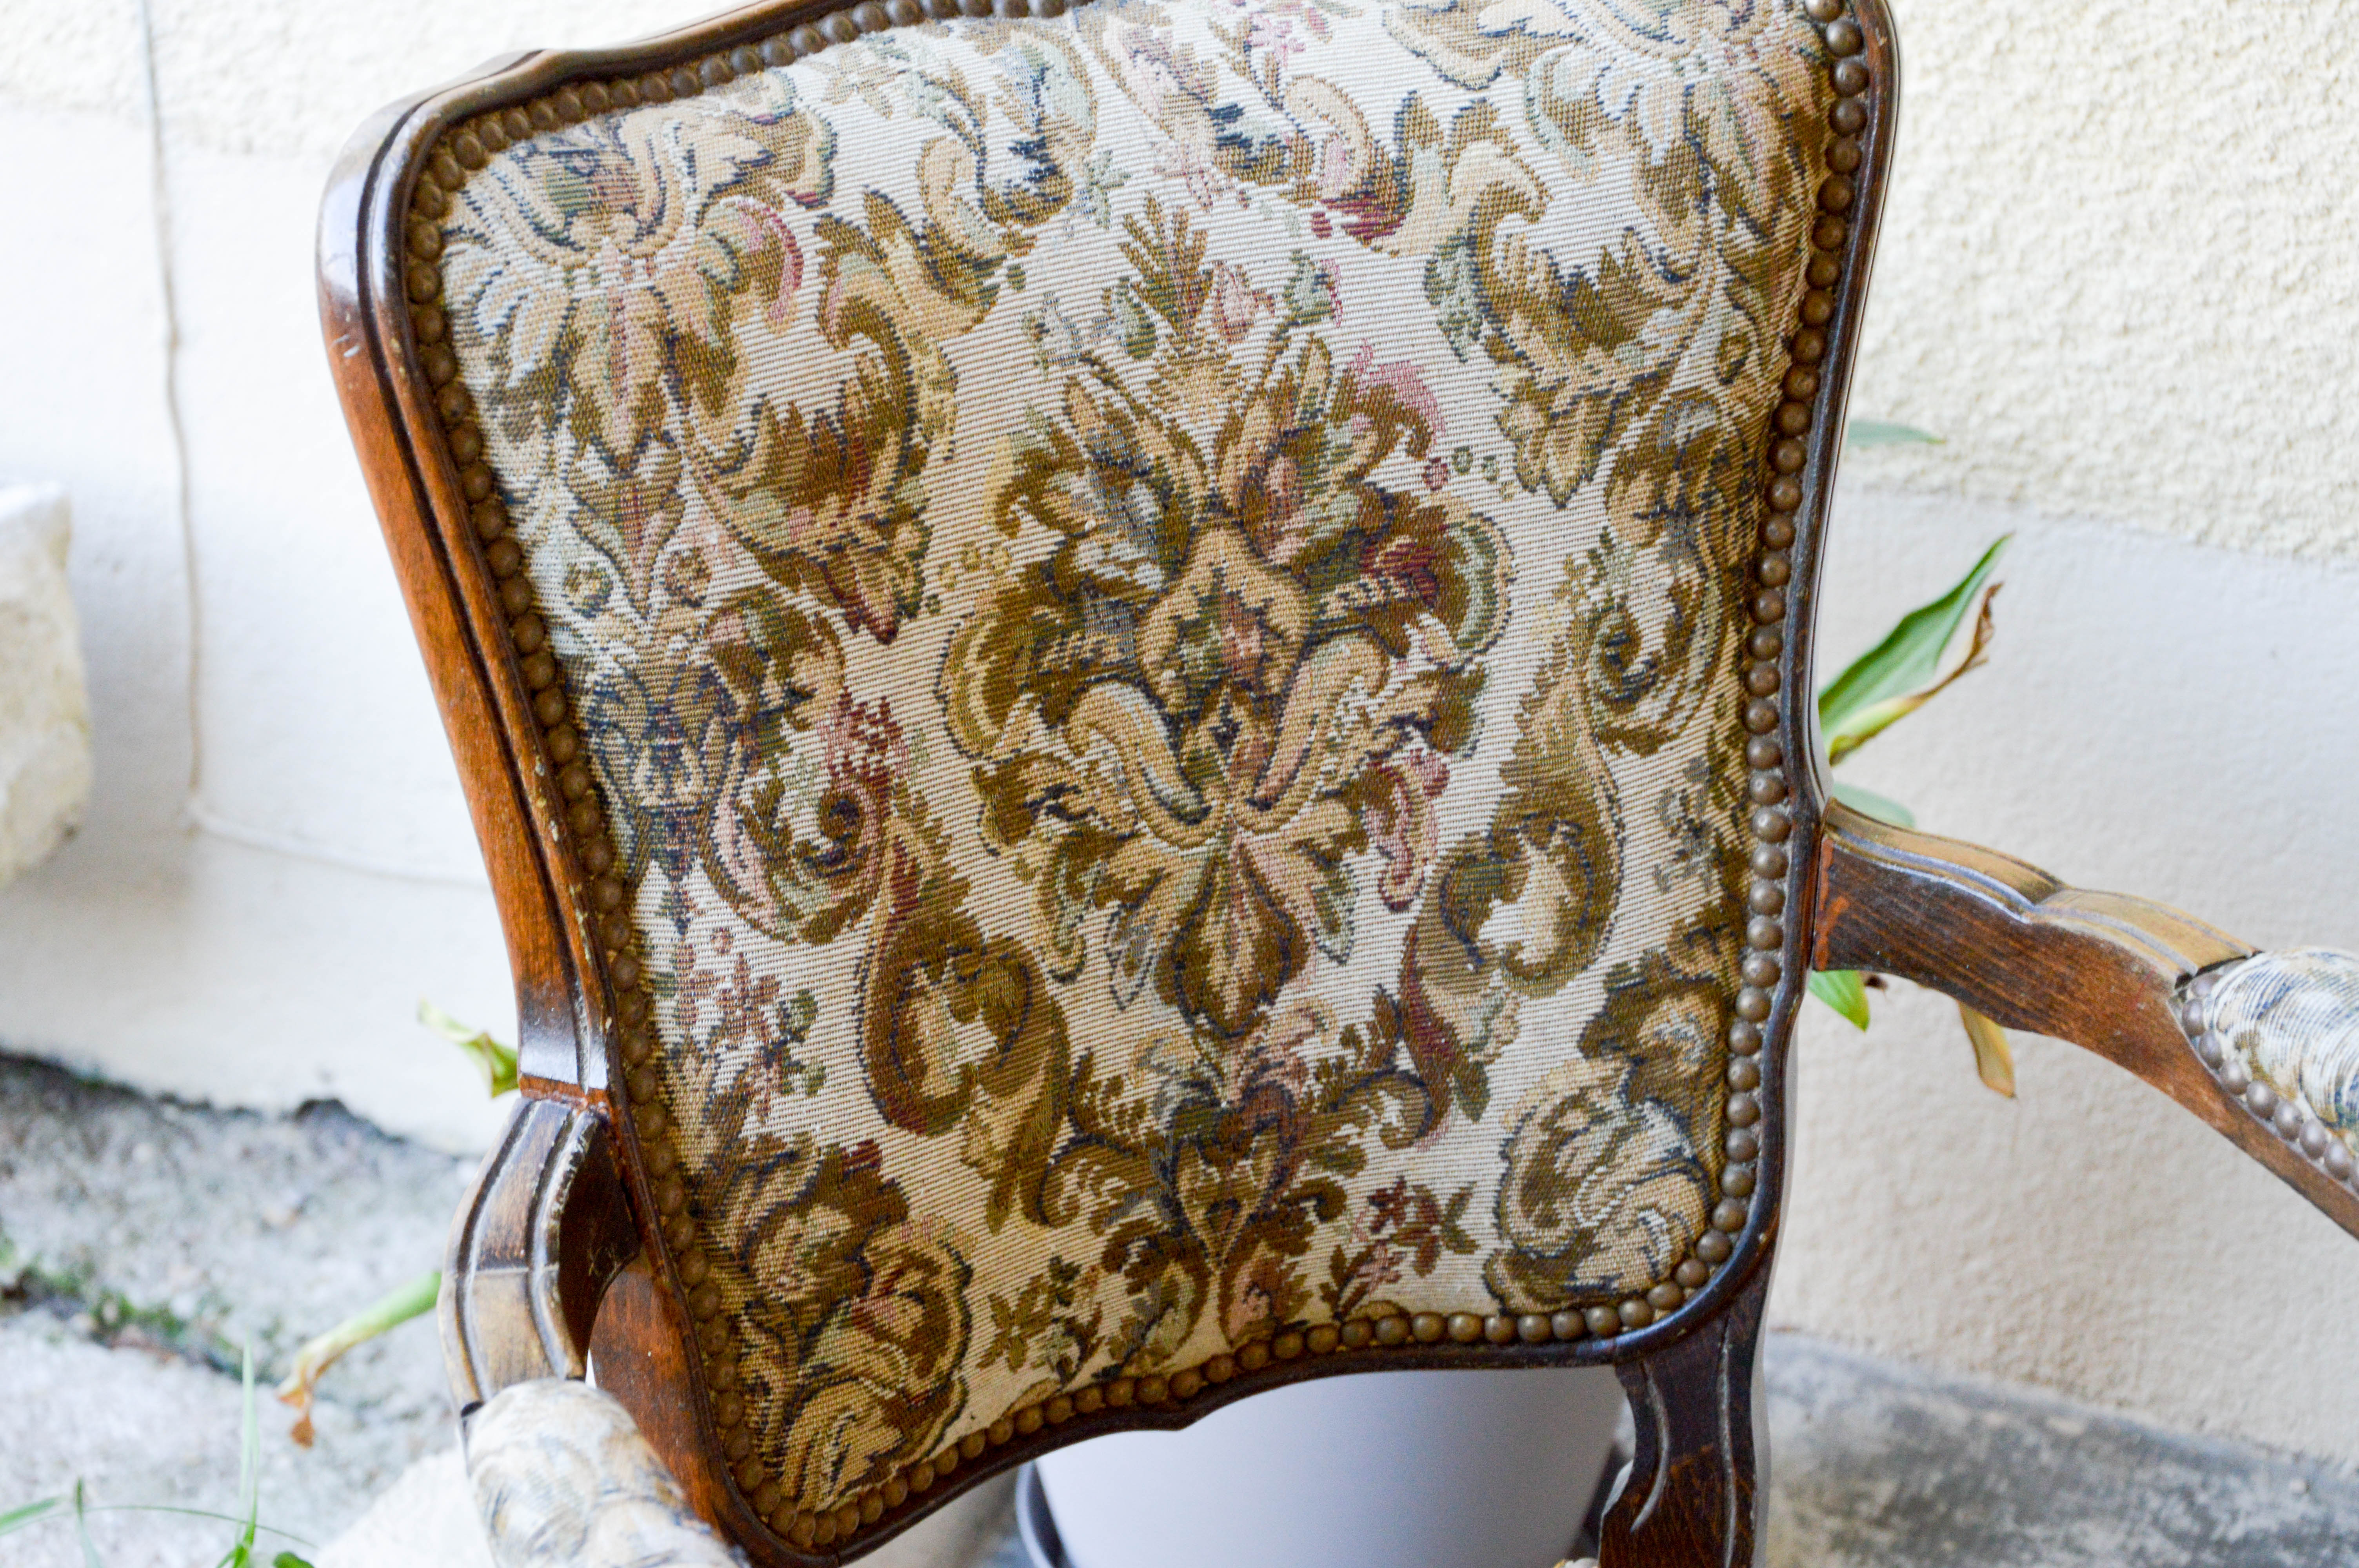 chaise-voltaire173